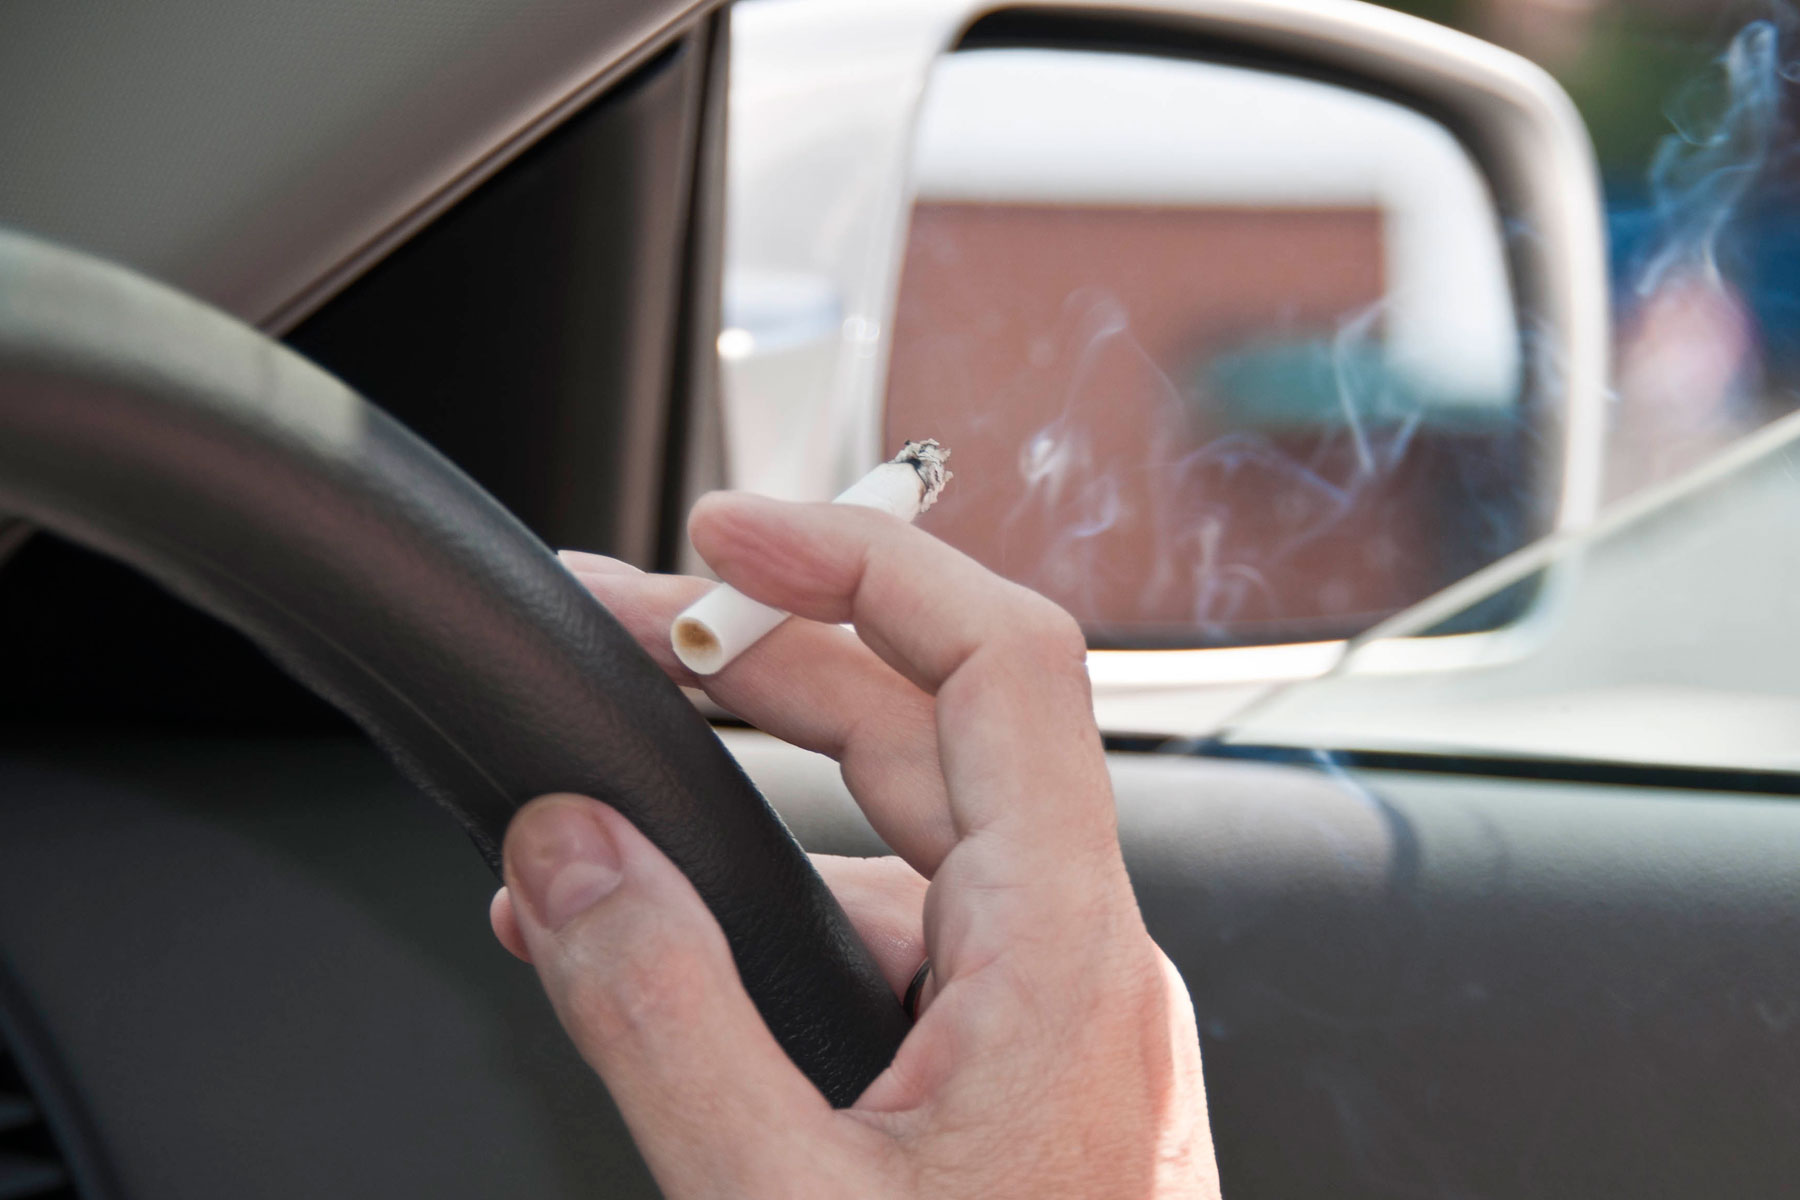 smoking prohibited with minors in vehicles essay Smoking should be banned because it destroys people's health, finances and families smoking has been shown to be dangerous to health of the people heart disease, bronchitis and lung cancer.